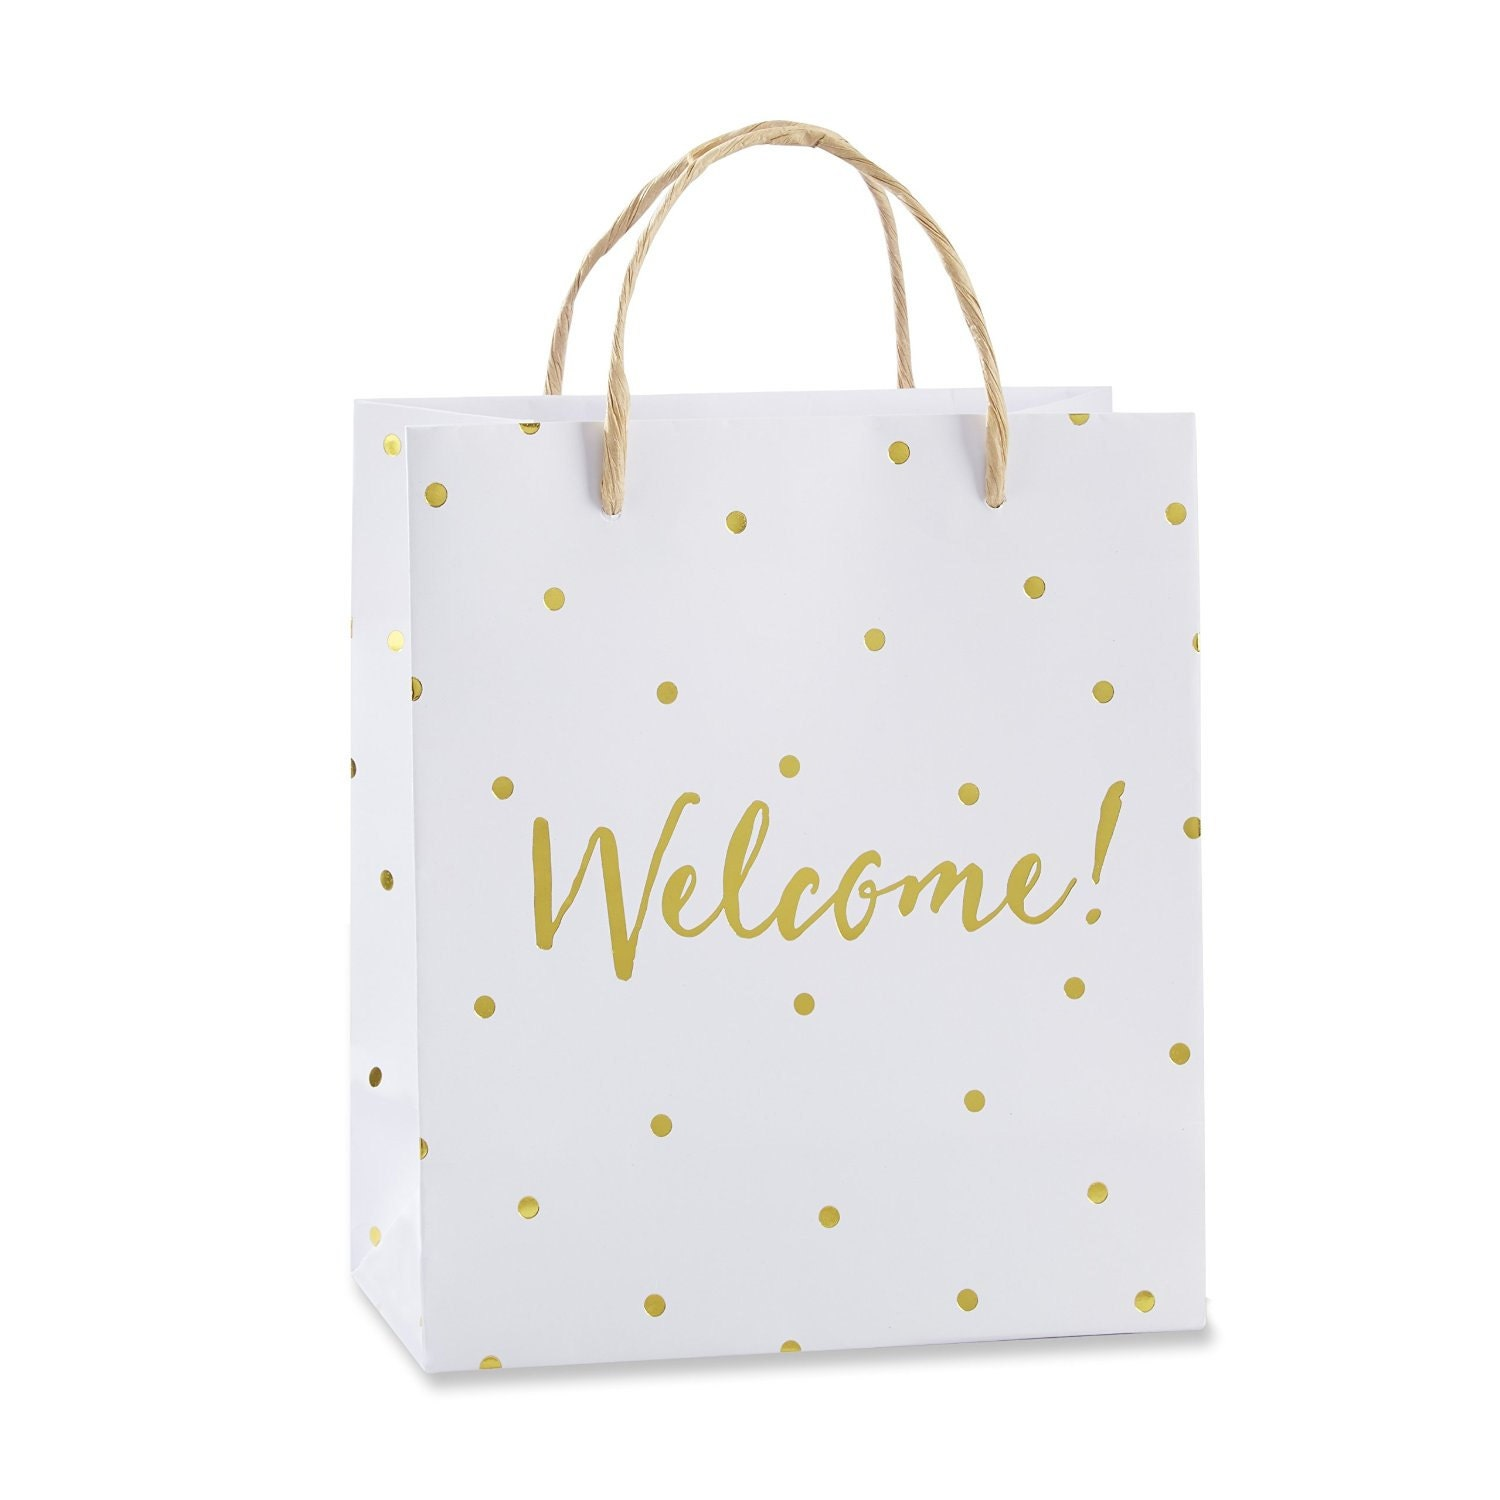 Welcome Wedding Gift Bags: 12 Gold Foil Dot Welcome Bags Wedding Gifts Bag Bridal Shower